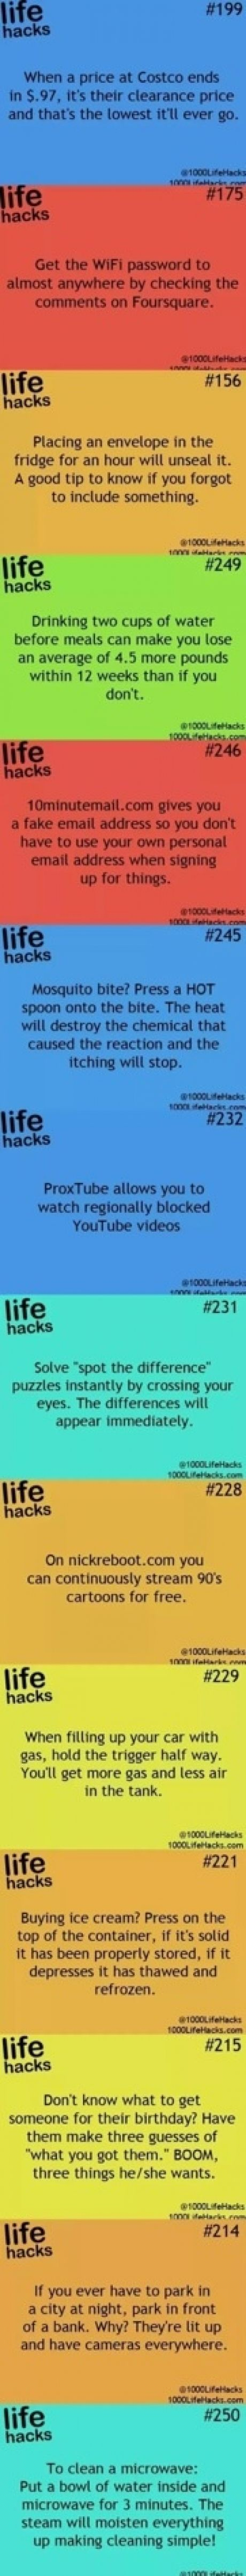 53 Best Life Hacks Images On Pinterest Cleaning And Almighty 5 In 1 Professional Camera Kit 14 That Youll Use Everyday